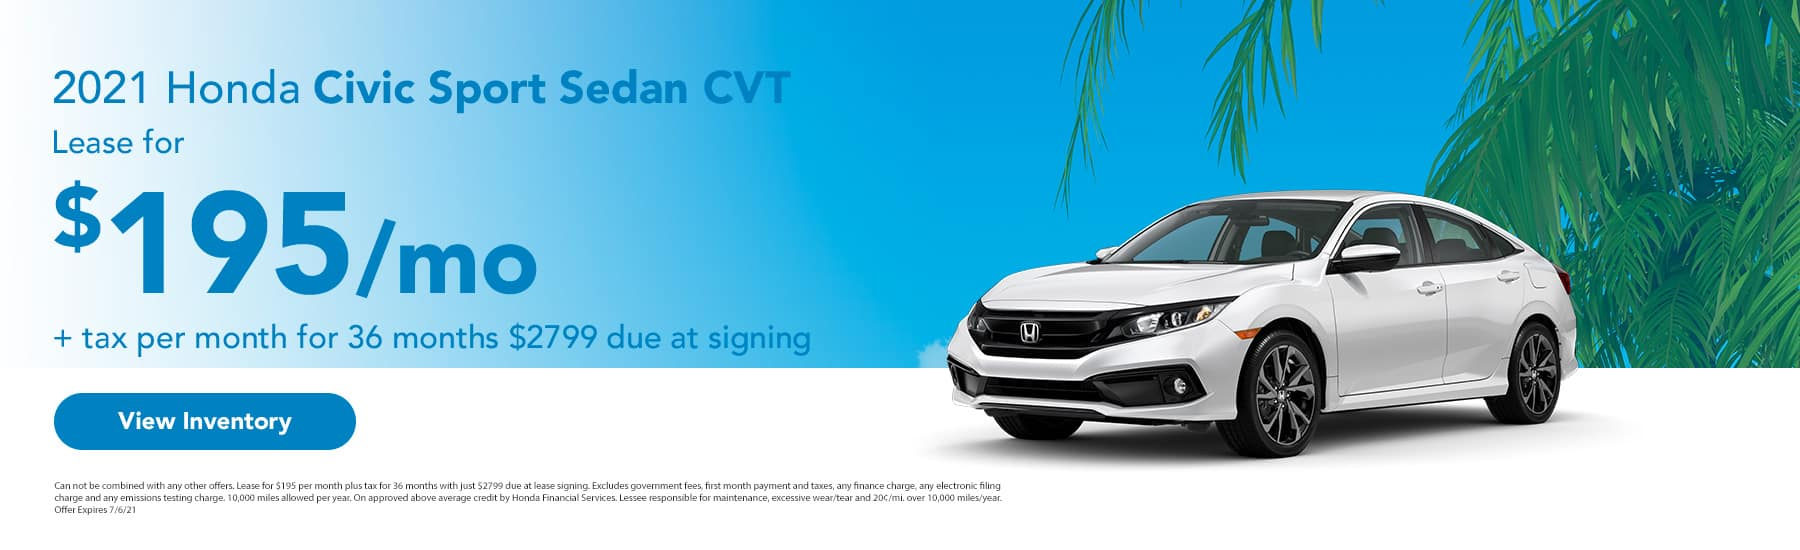 2021 Honda Civic Sport Sedan CVT Lease for $195 + tax per month for 36 months $2799 due at signing